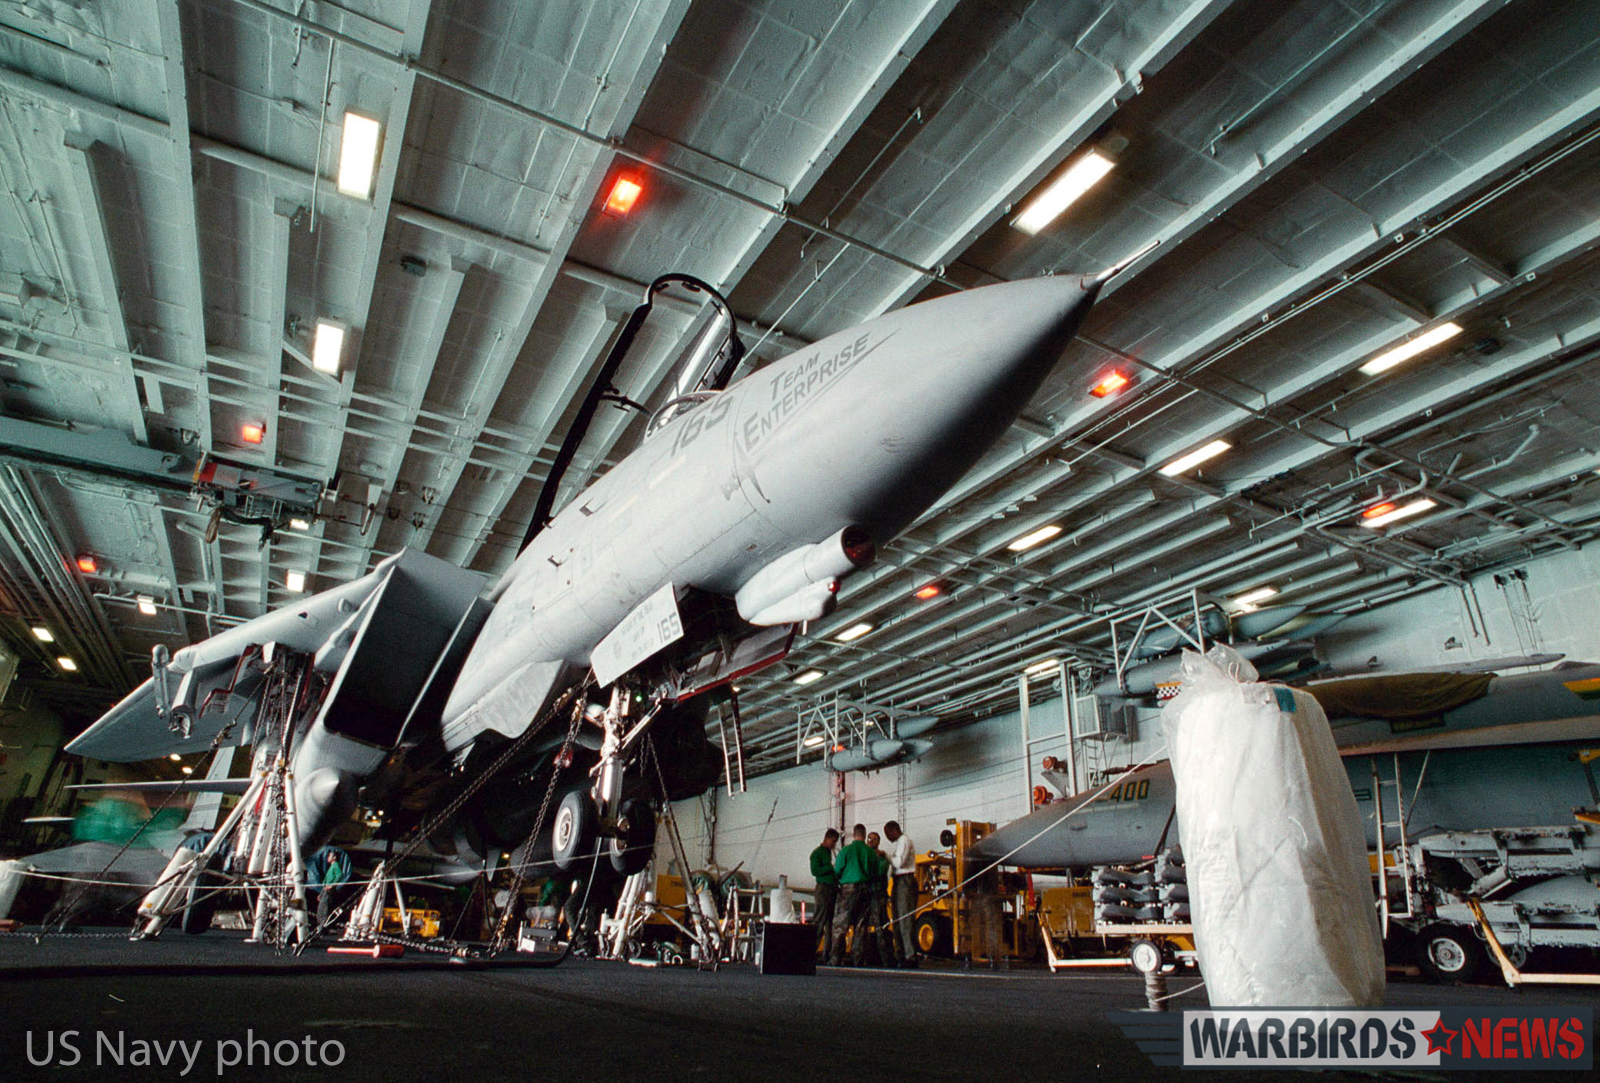 "At sea aboard USS Enterprise (CVN 65) (Nov. 6, 1998) -- An F-14 ""Tomcat"" from Fighter Squadron Thirty Two (VF-32) undergoes a check for proper operation of its landing gear. The USS Enterprise deployed to the Arabian Gulf. U.S. Navy Photo by Photographer's Mate 1st Class Nicholas D. Sherrouse. (RELEASED)"